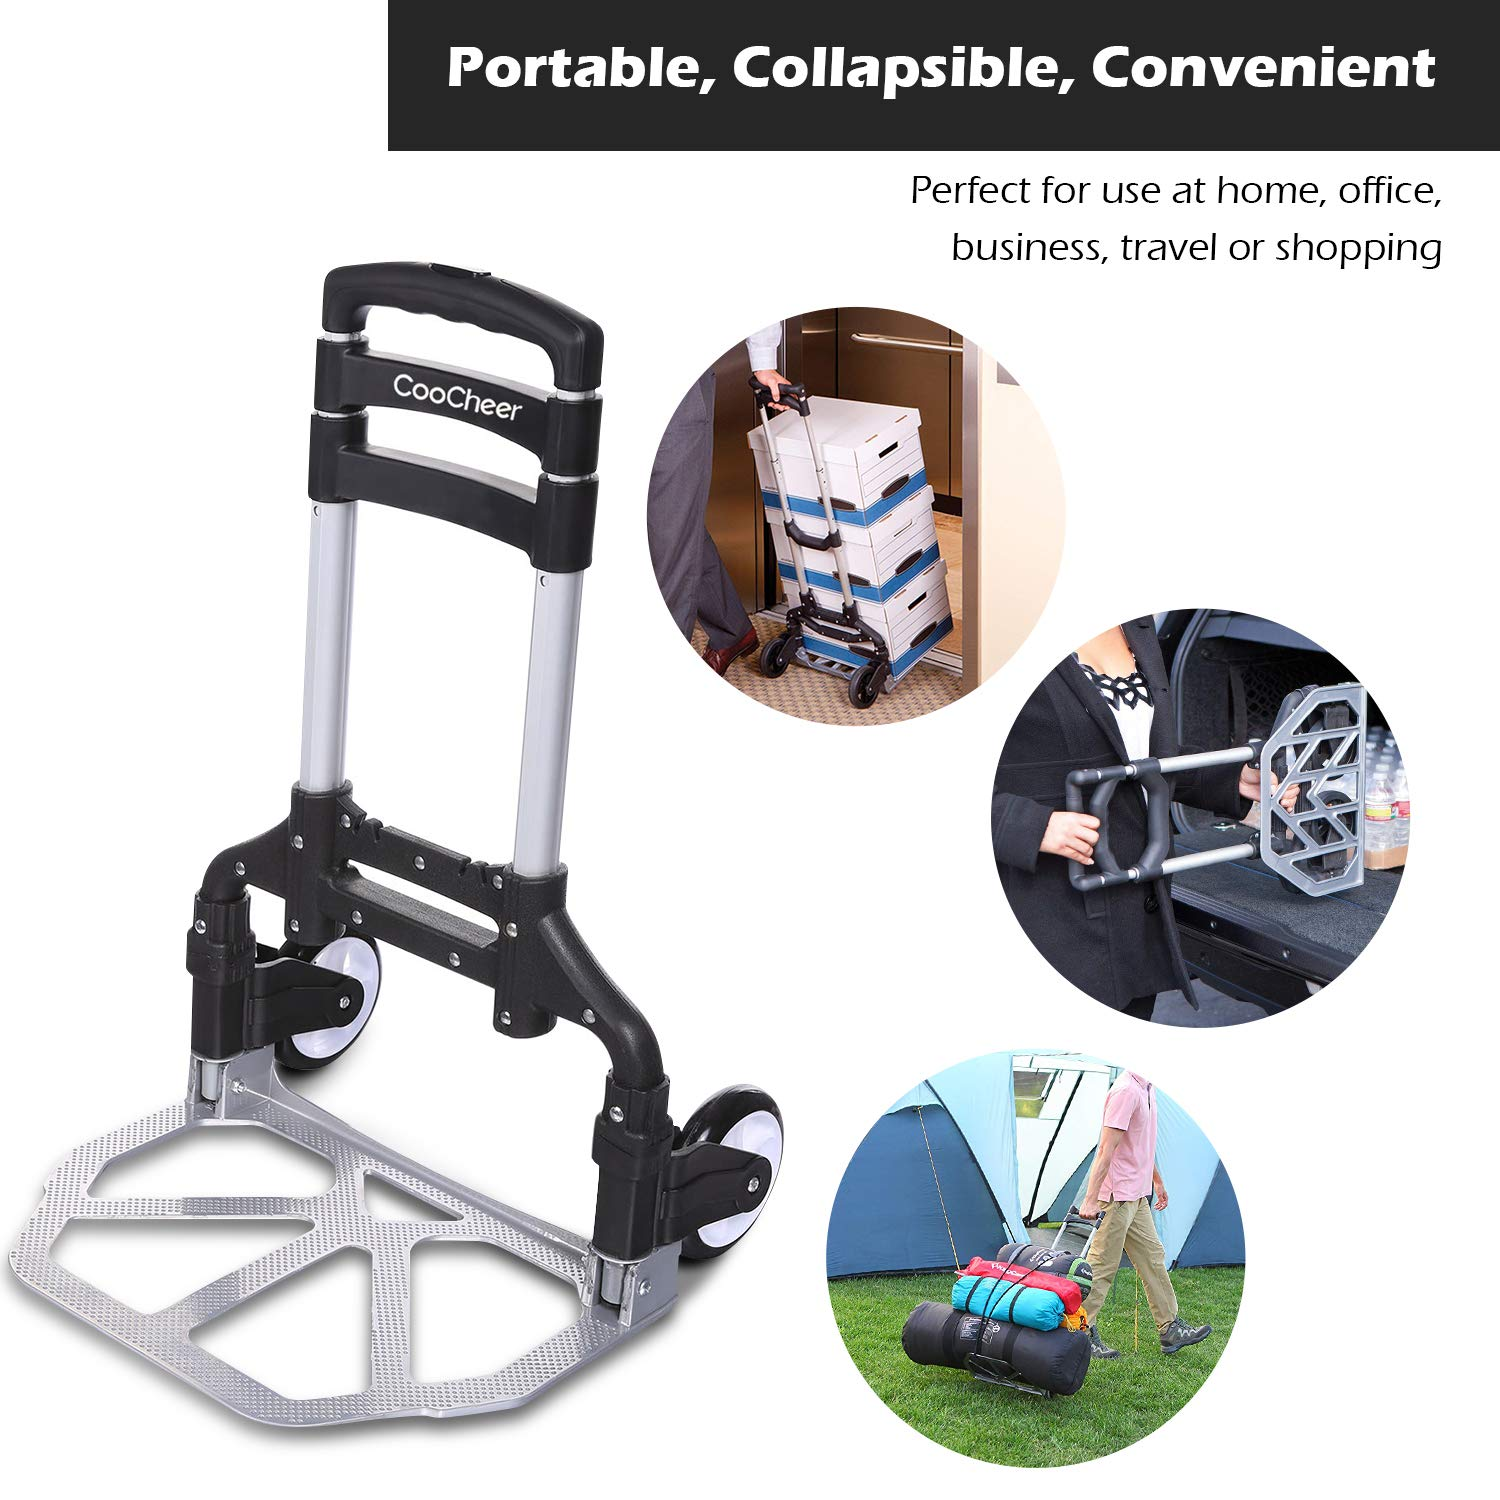 Folding Hand Truck Shopping or Industrial 150lbs Portable Heavy-Duty Luggage Aluminum Trolley Cart with Telescoping Handle and 2 Wheels for Travel